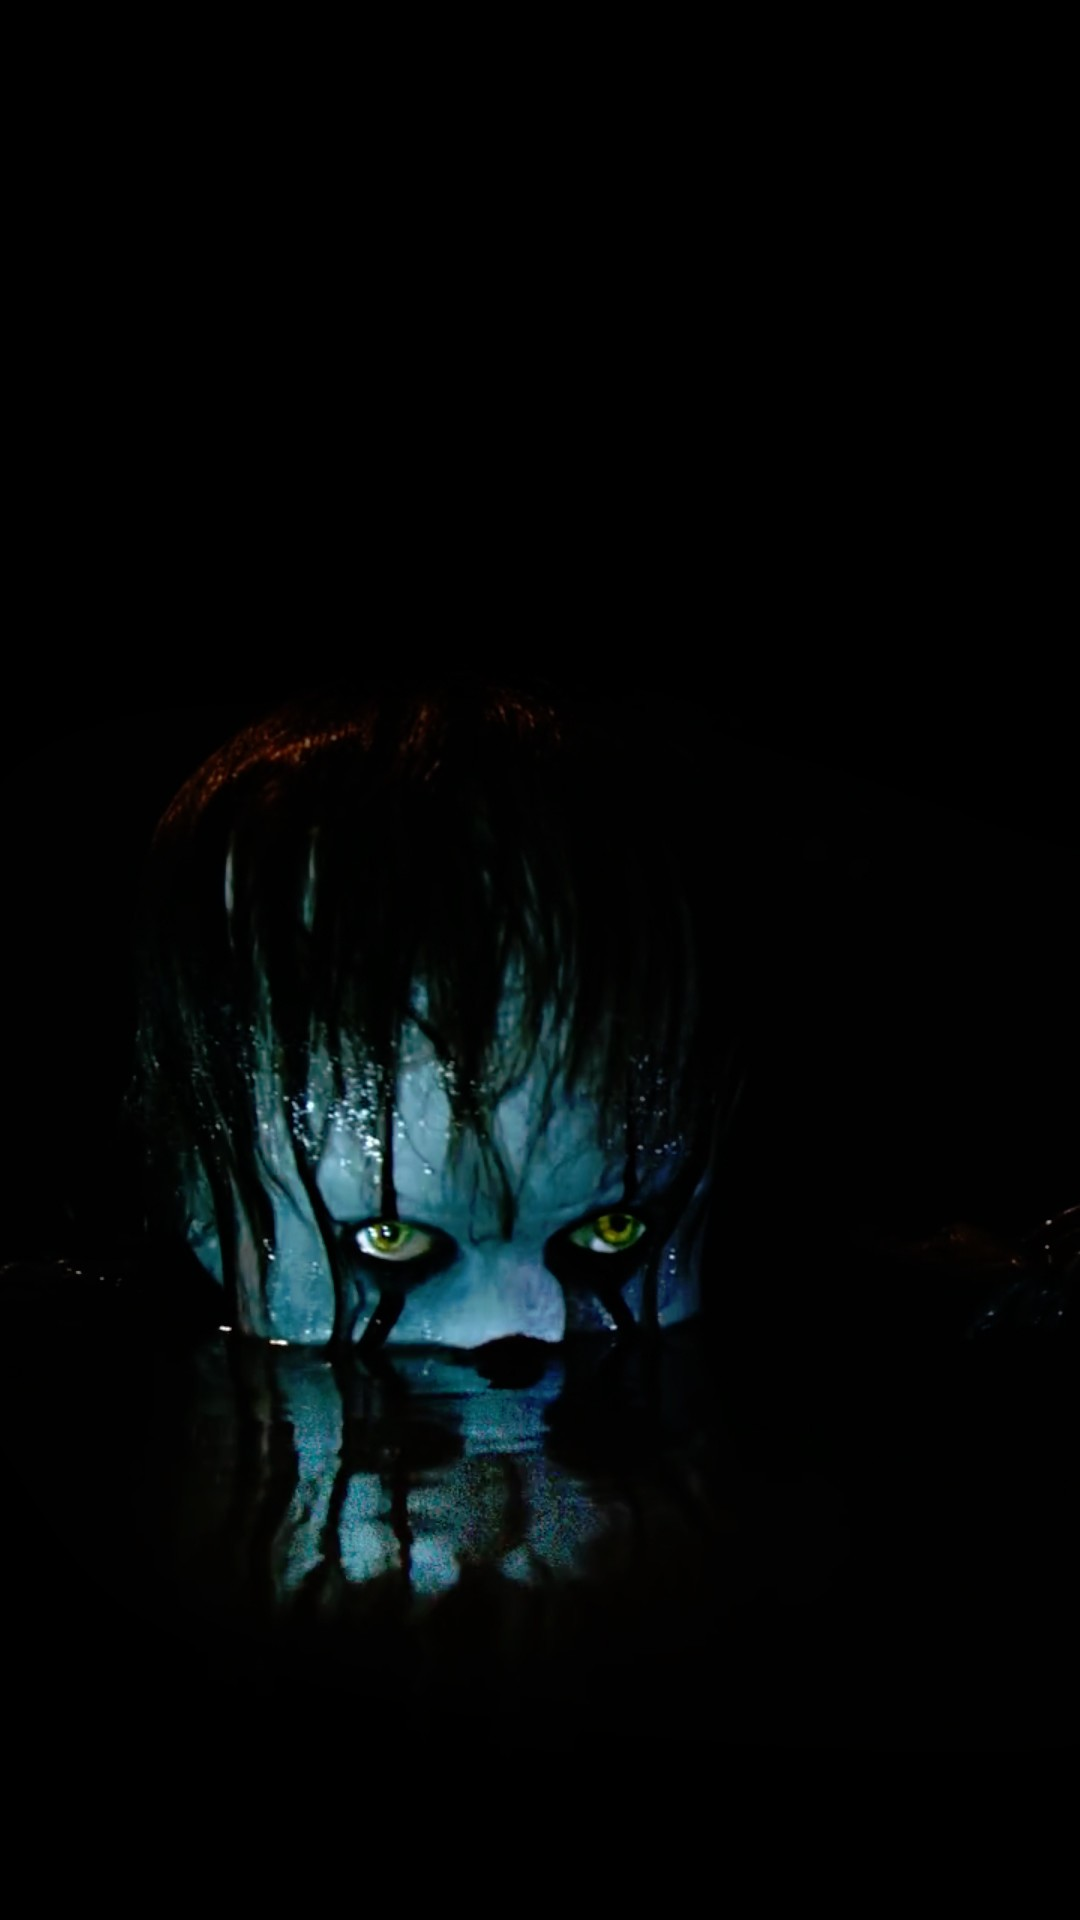 Pennywise Wallpaper Samsung Kolpaper Awesome Free Hd Wallpapers